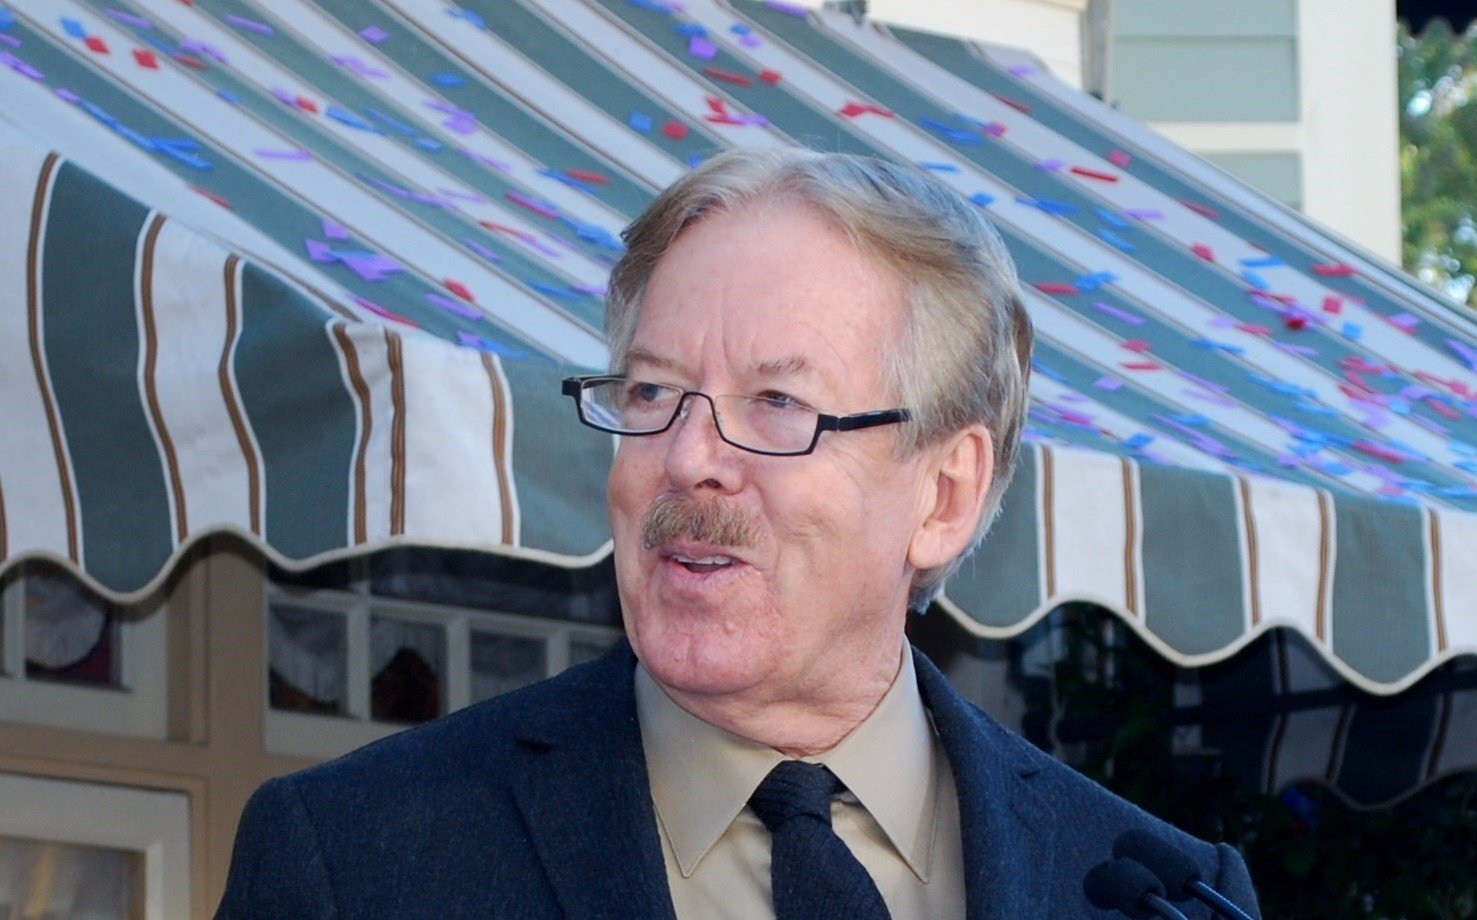 On Tony Baxter and His Window Dedication Ceremony